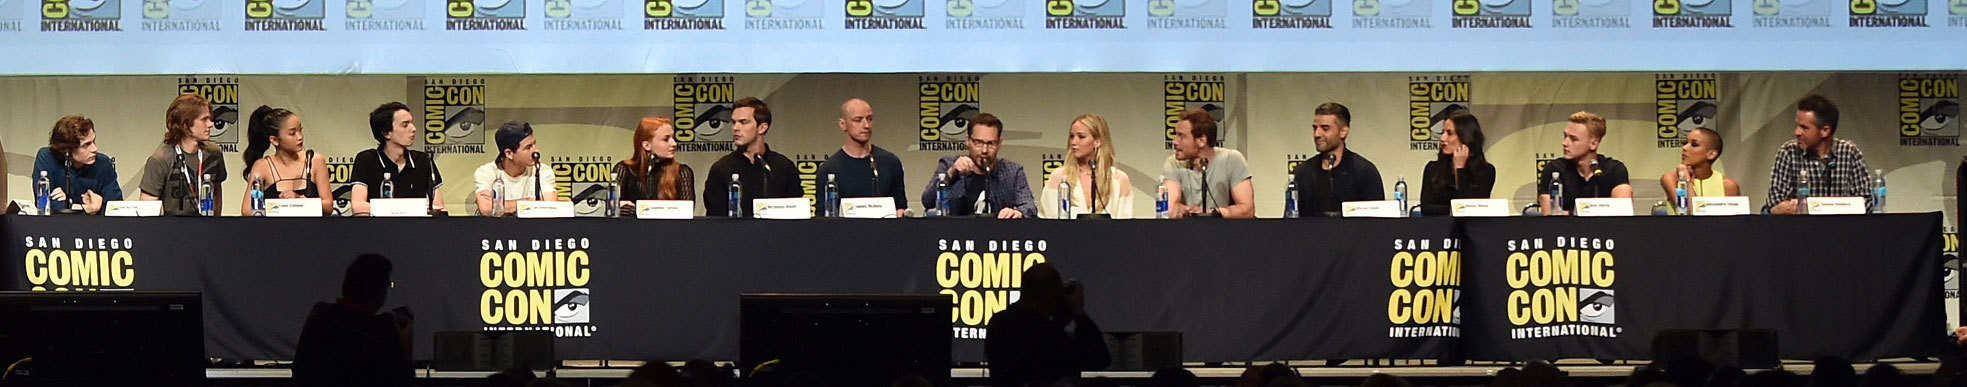 Wolverine Retires, Apocalypse Appears, and More from the 'X-Men' Comic-Con Panel